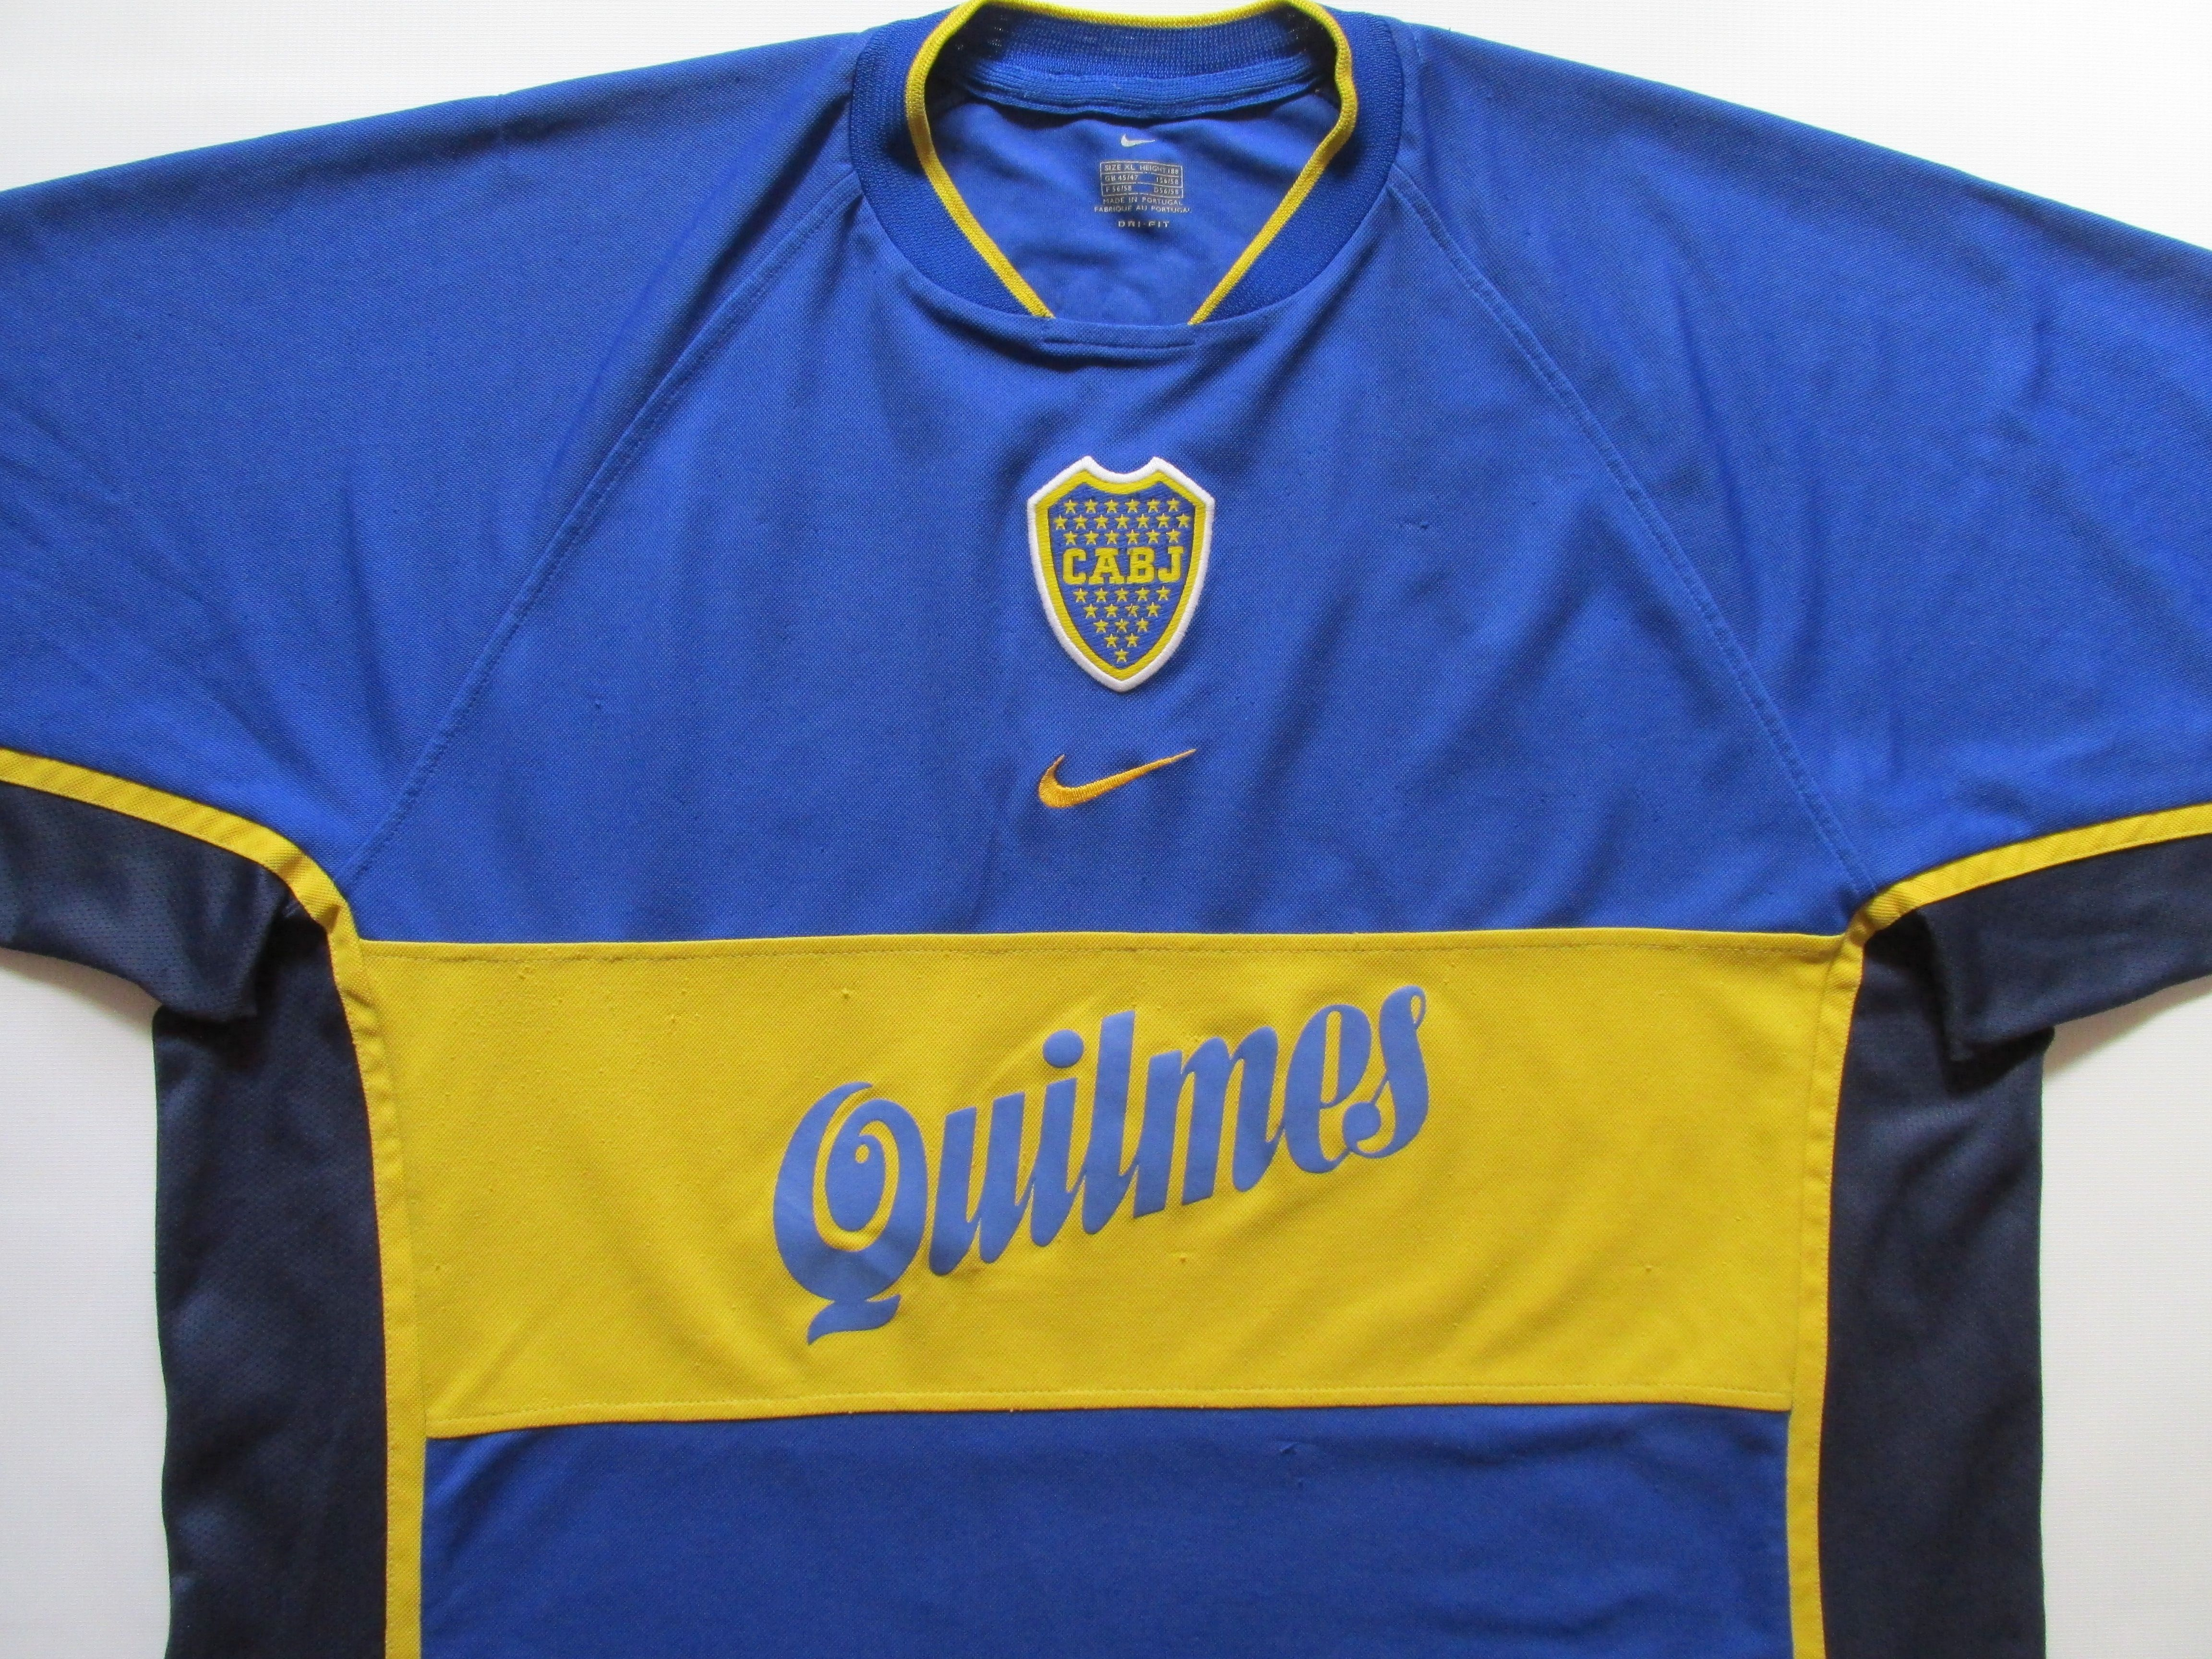 buy online 134f0 ddf21 Boca juniors 2001 home football shirt camiseta soccer jersey ...